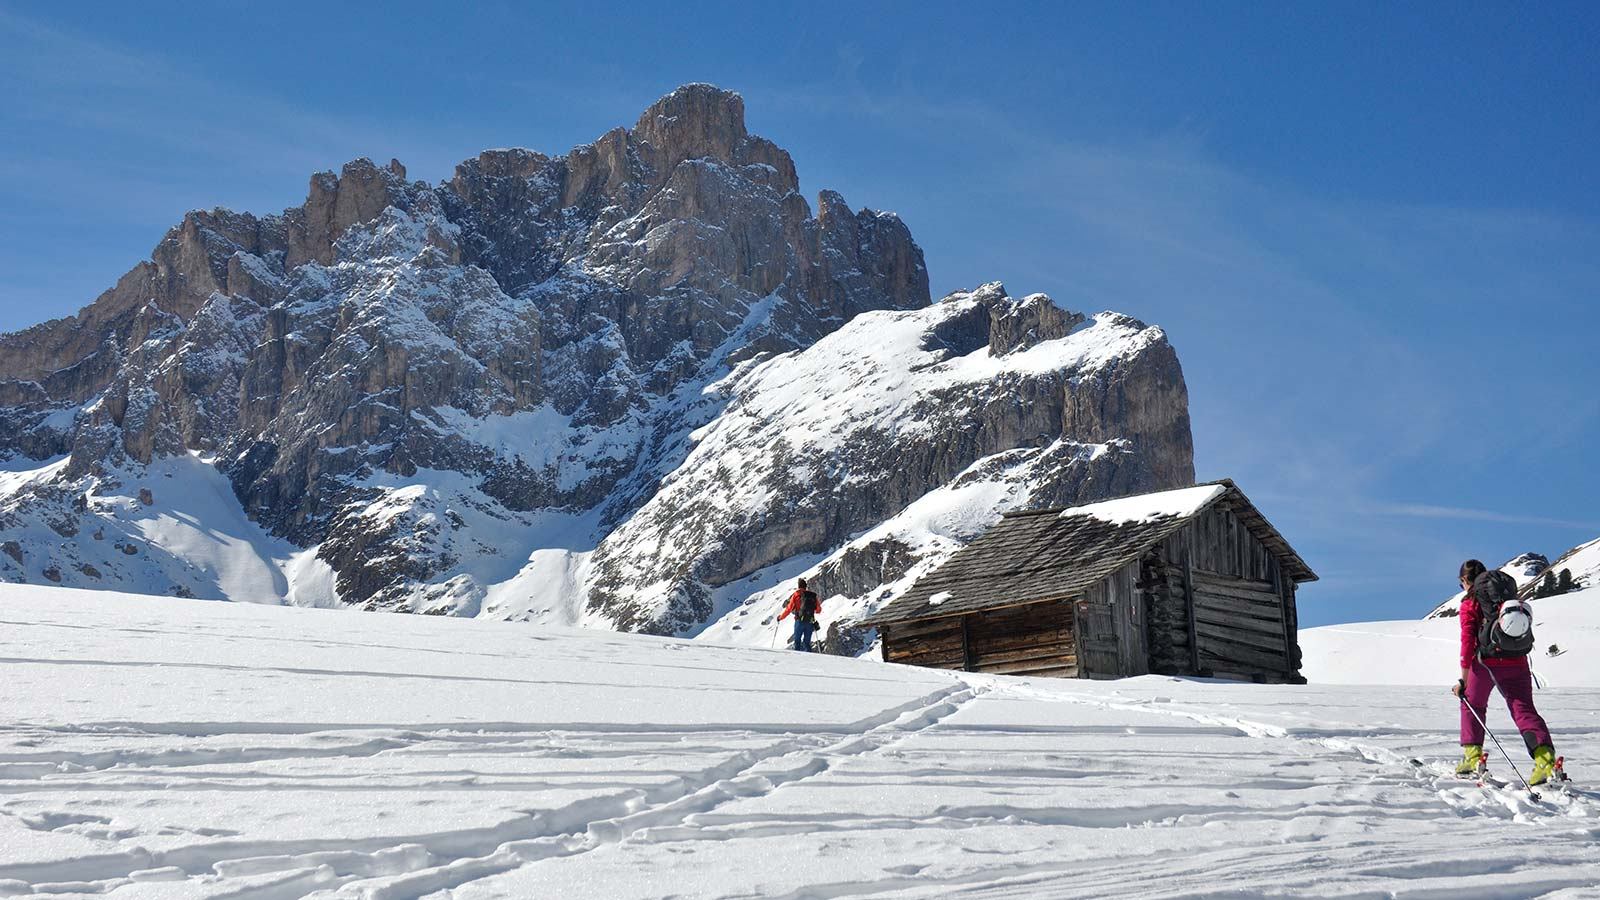 Skier on the Odle of Funes near a wood hut